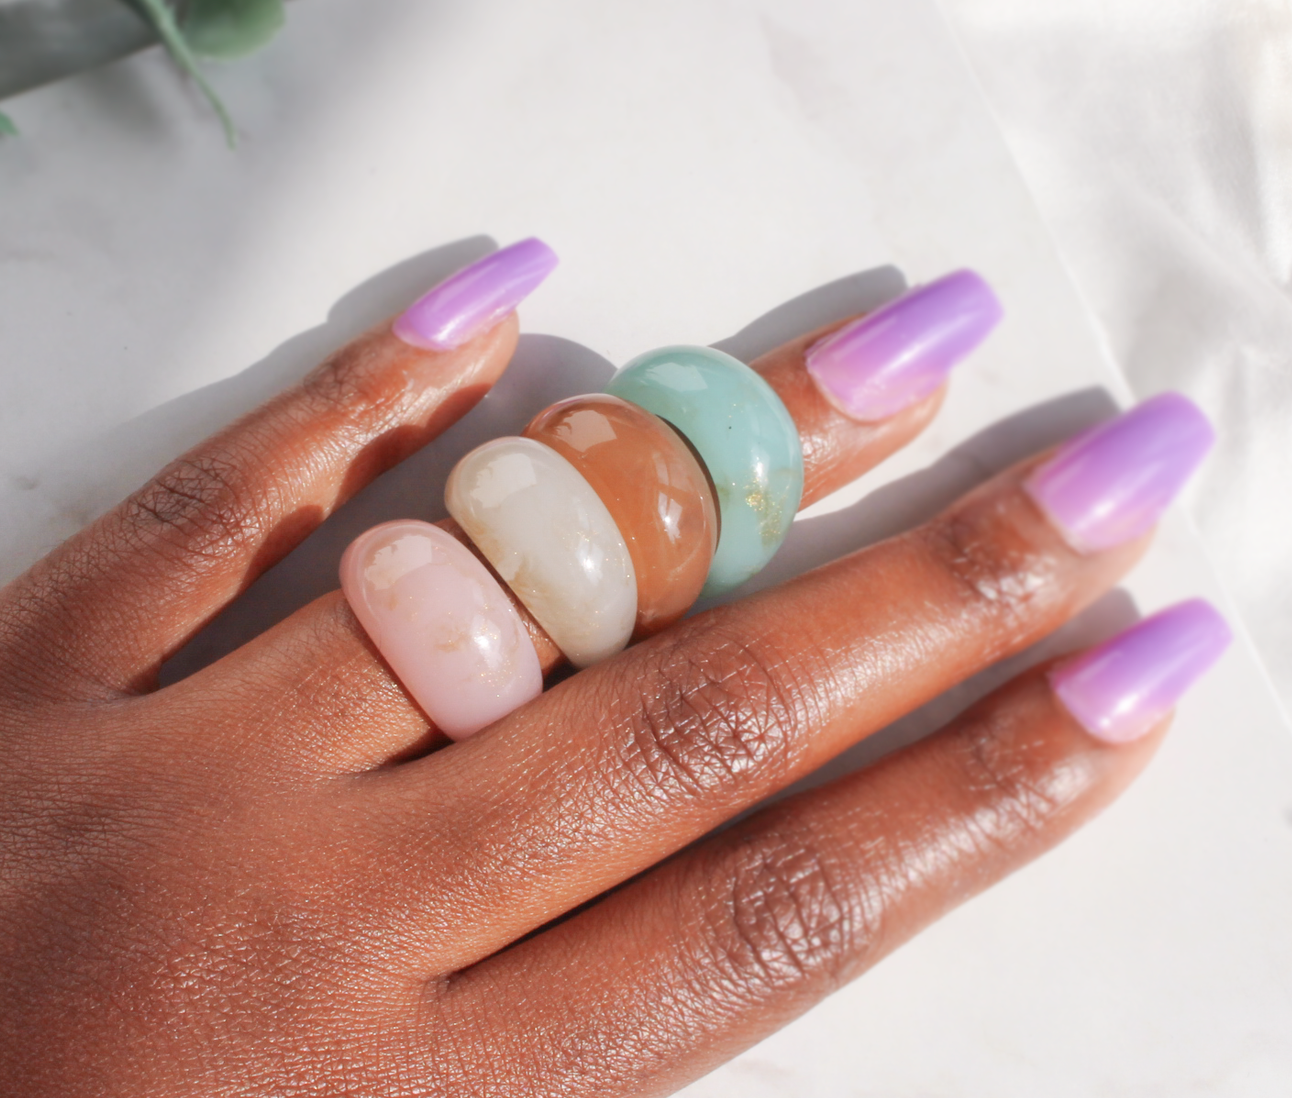 model's hand with pink, white, brown, and turquoise stone-like rings